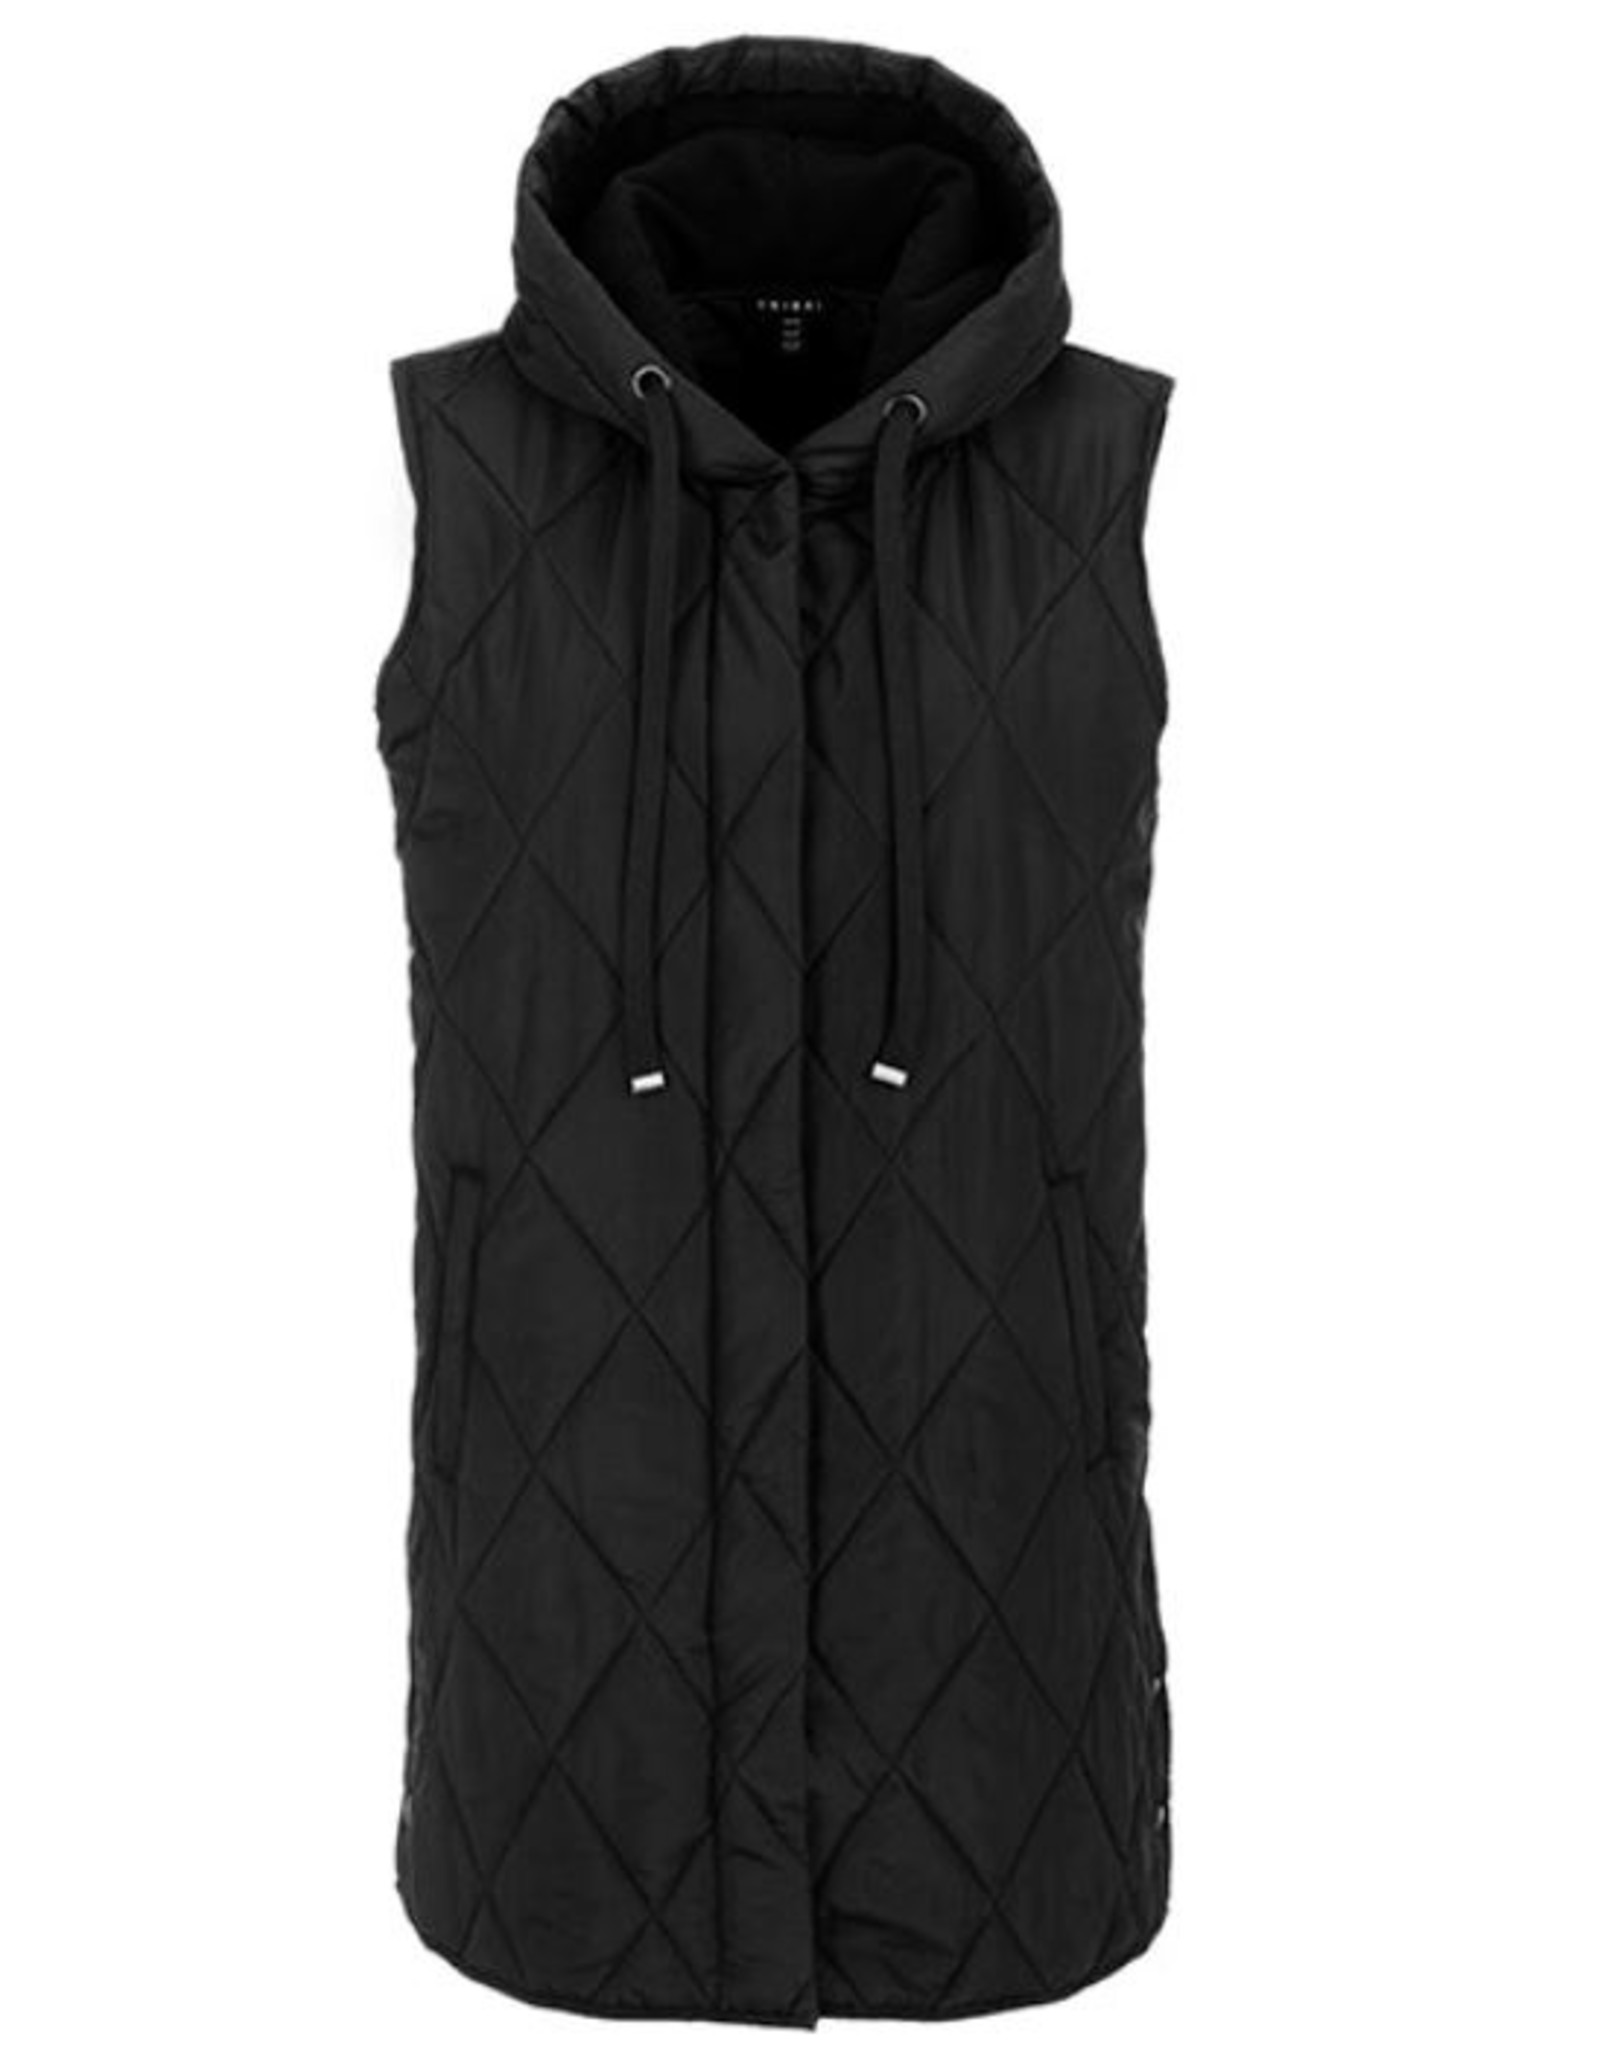 Tribal Hooded Long Puffer Vest